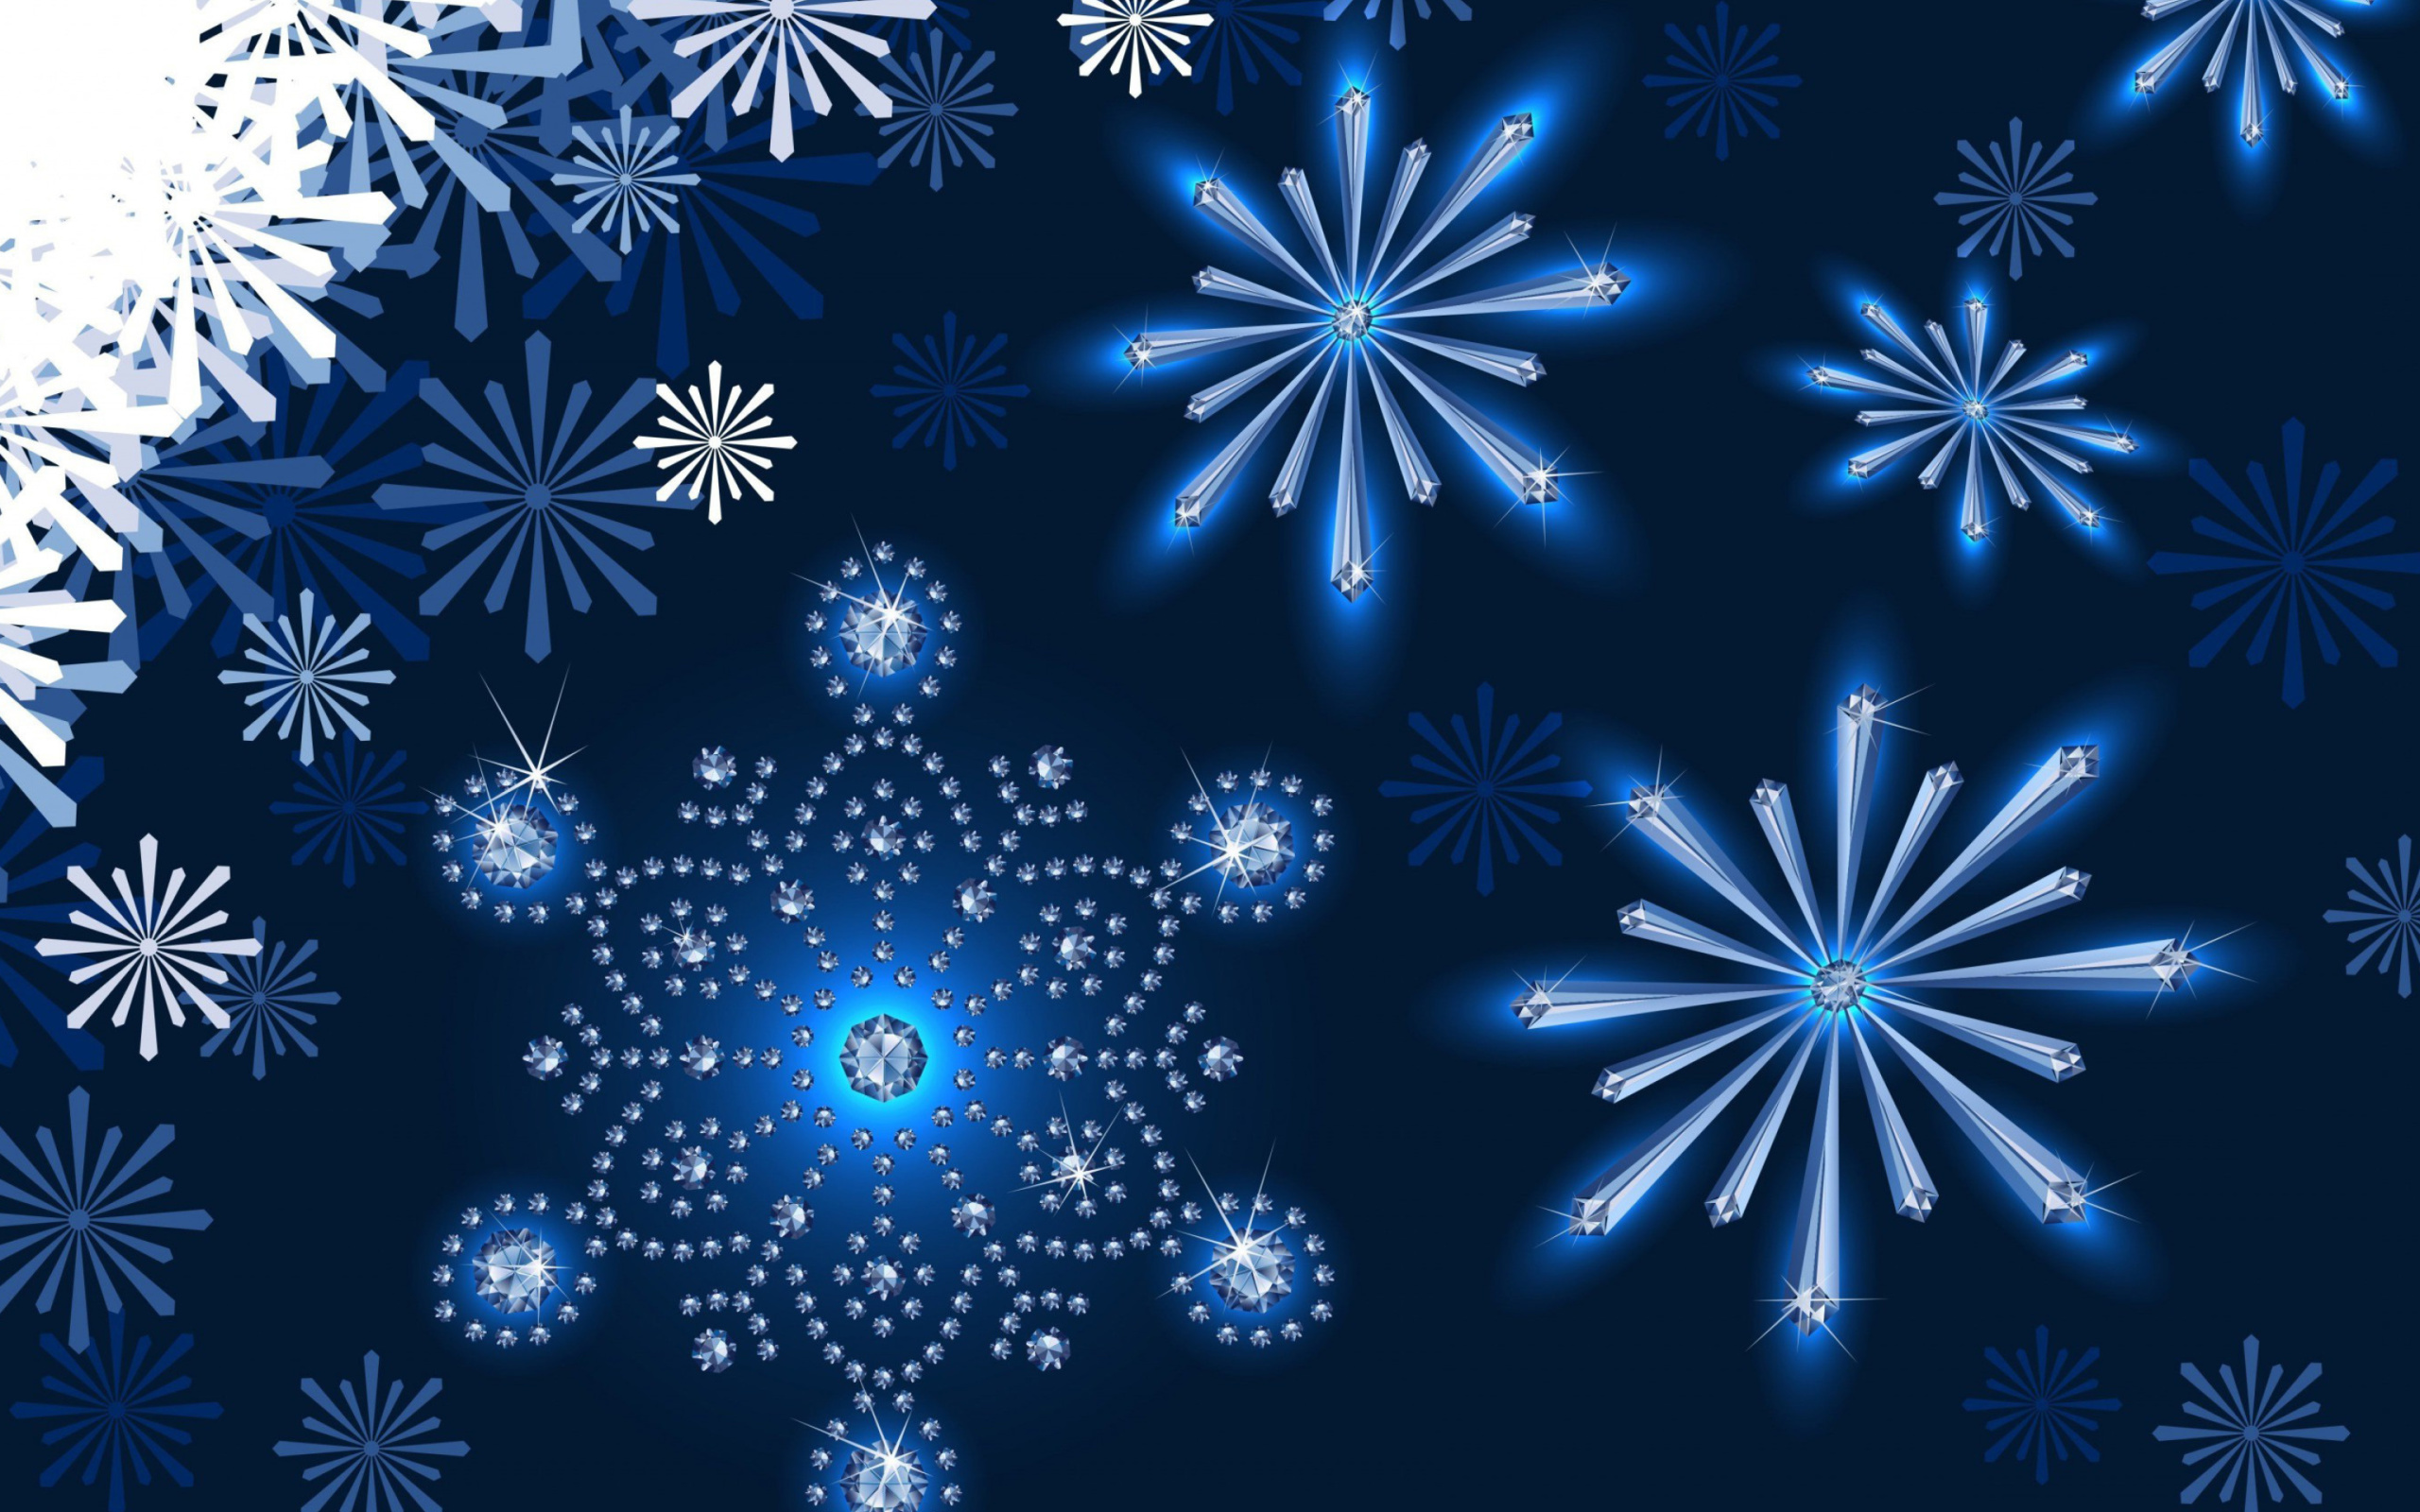 Snowflakes Ornament wallpaper 2560x1600